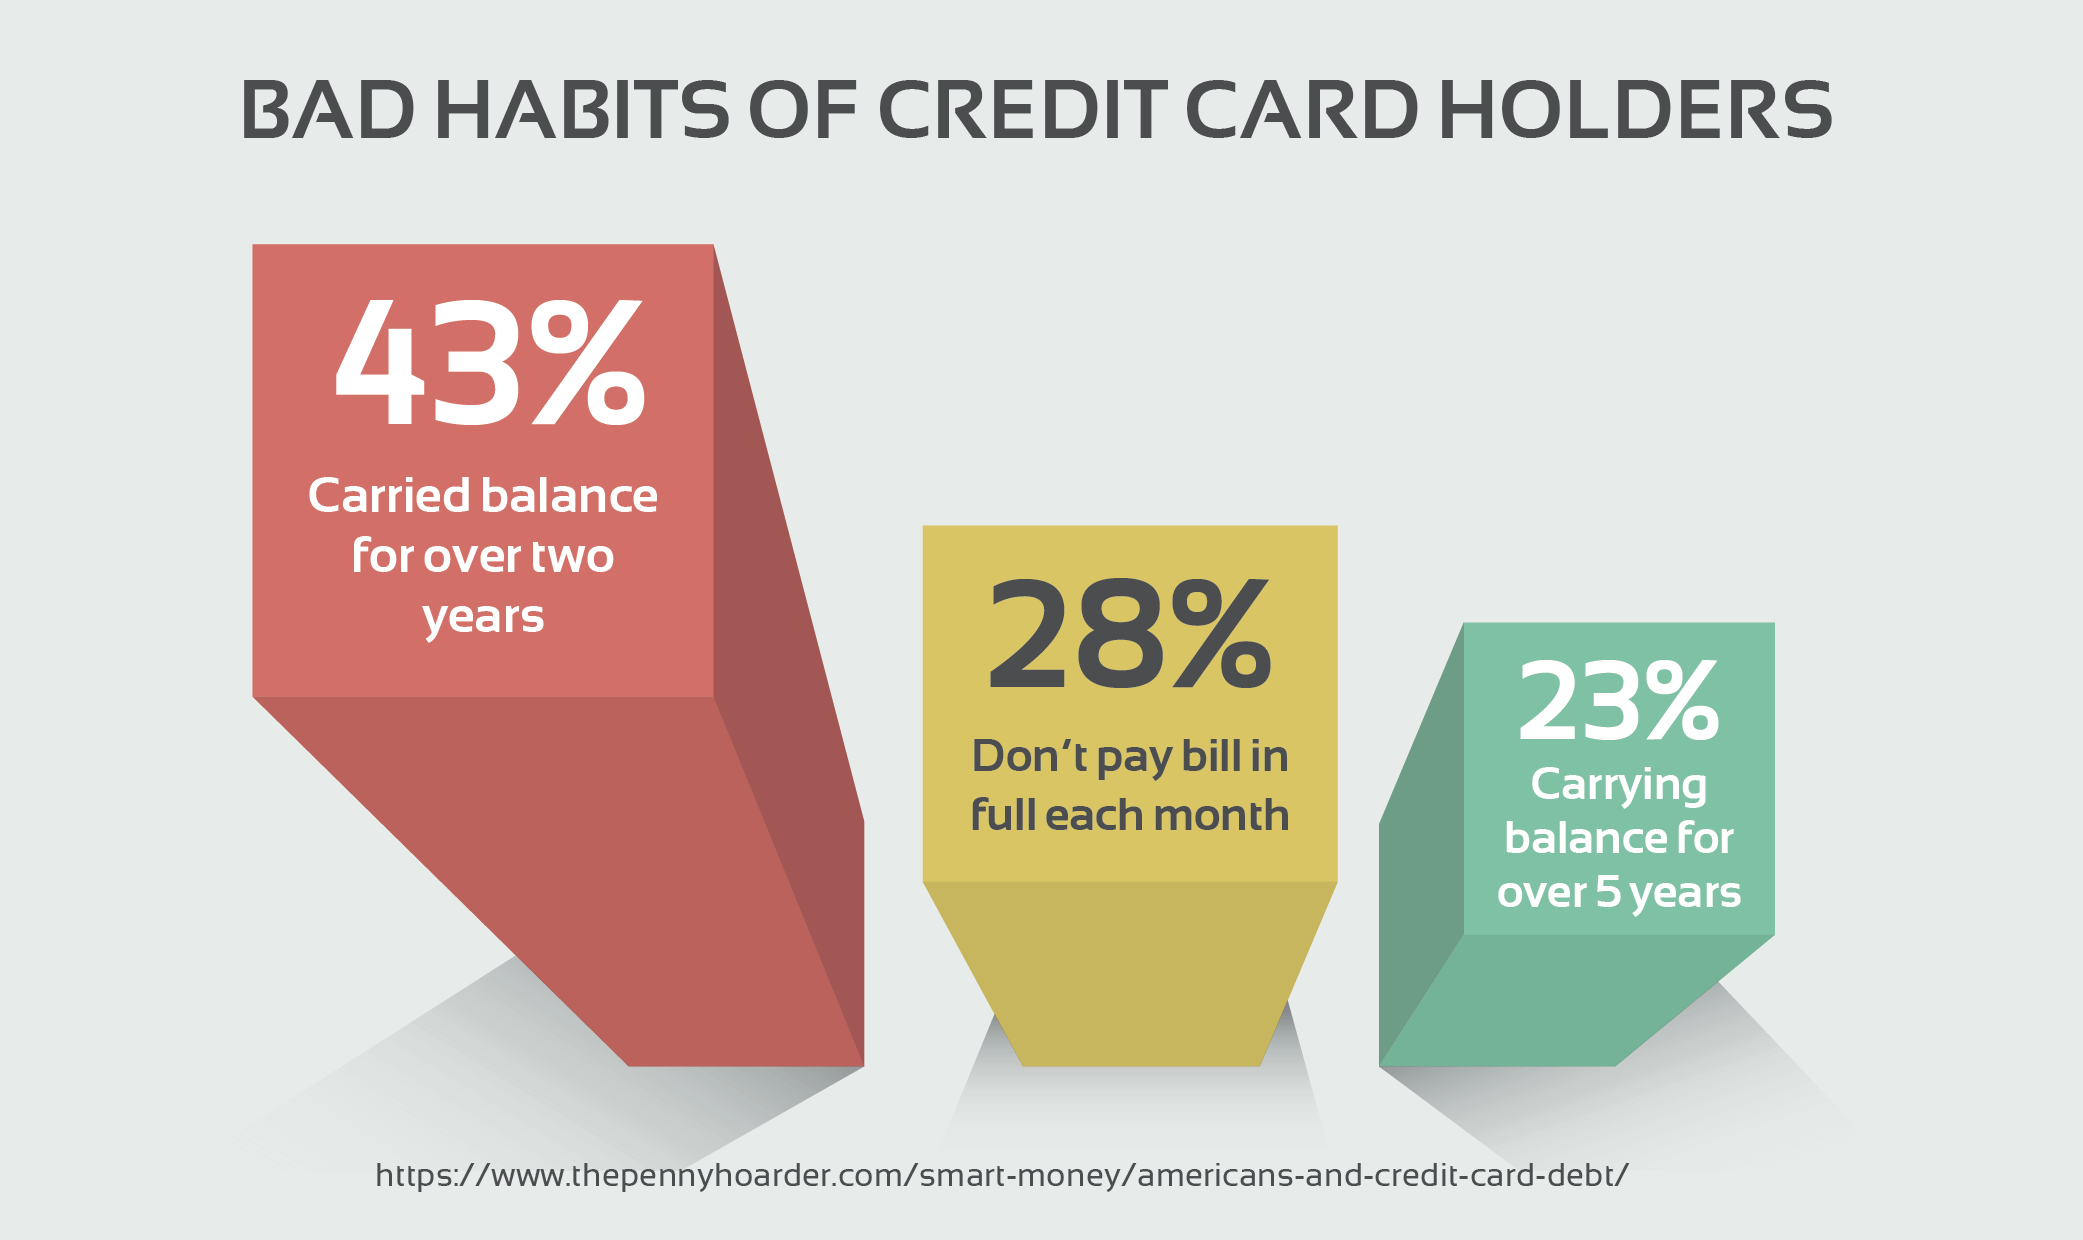 Bad Habits of Credit Card Holders